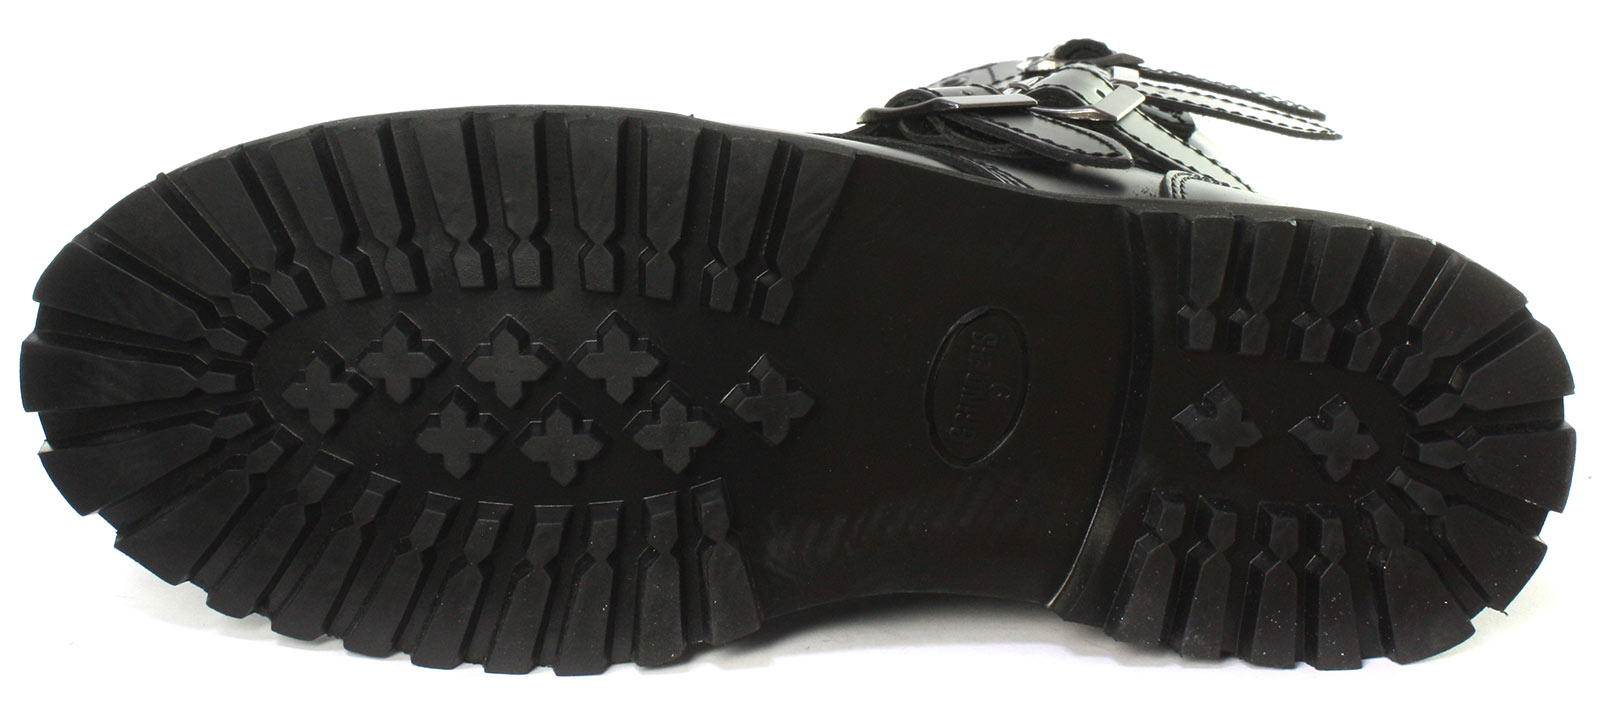 Grinders-Quad-CS-14-Eyelet-Buckle-Unisex-Steel-Toe-Derby-Boots-ALL-SIZES thumbnail 5